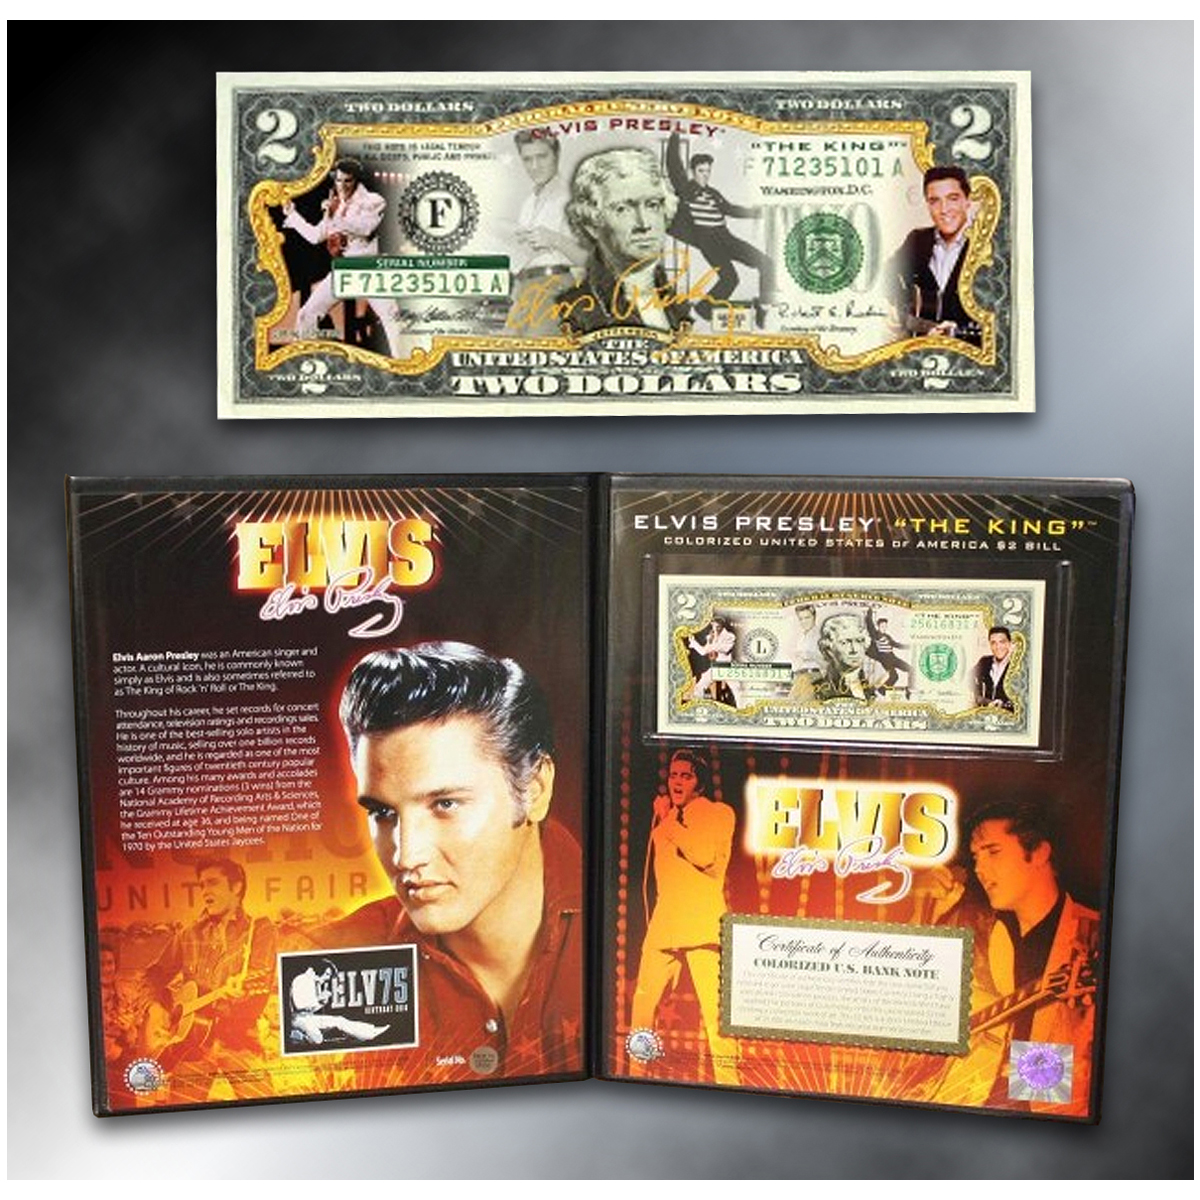 ELVIS PRESLEY - The King / Jailhouse Rock -  Colorized $2 Bill